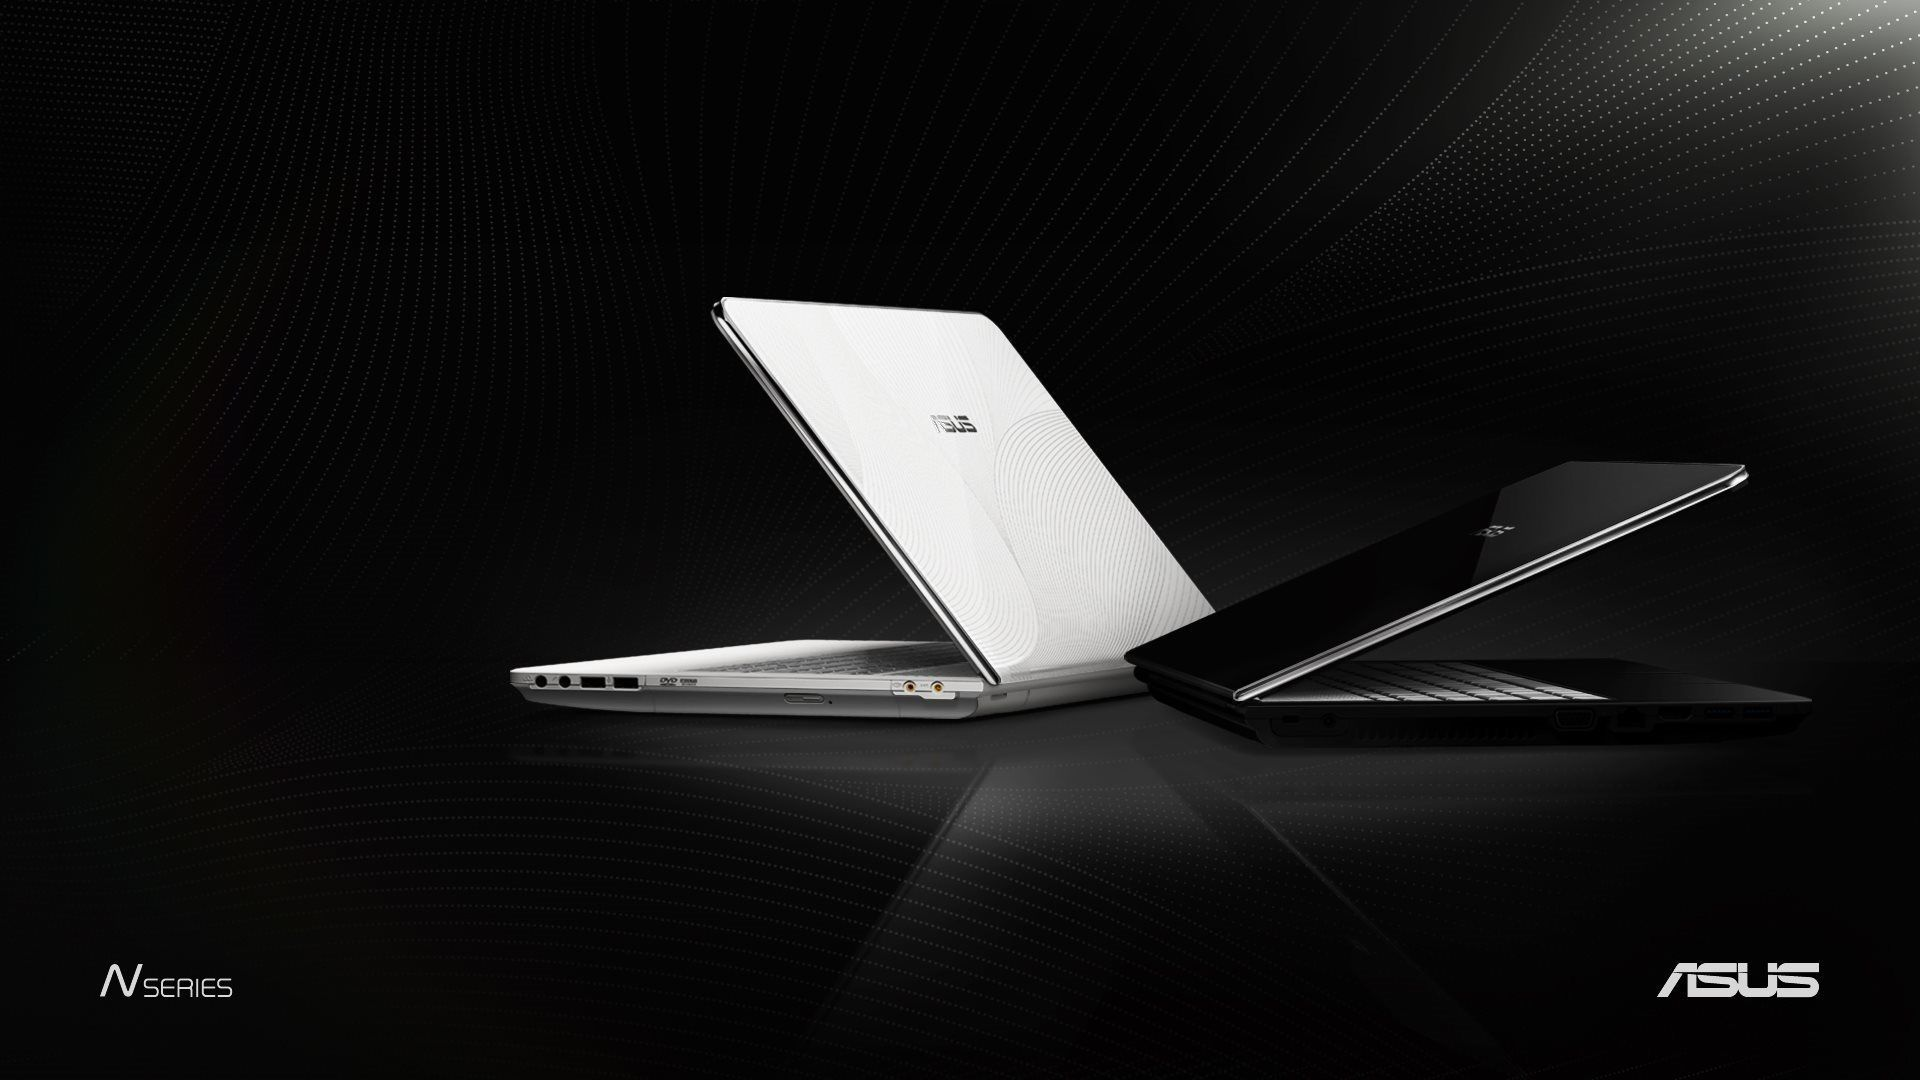 Asus Wallpapers Widescreen: Free Wallpapers